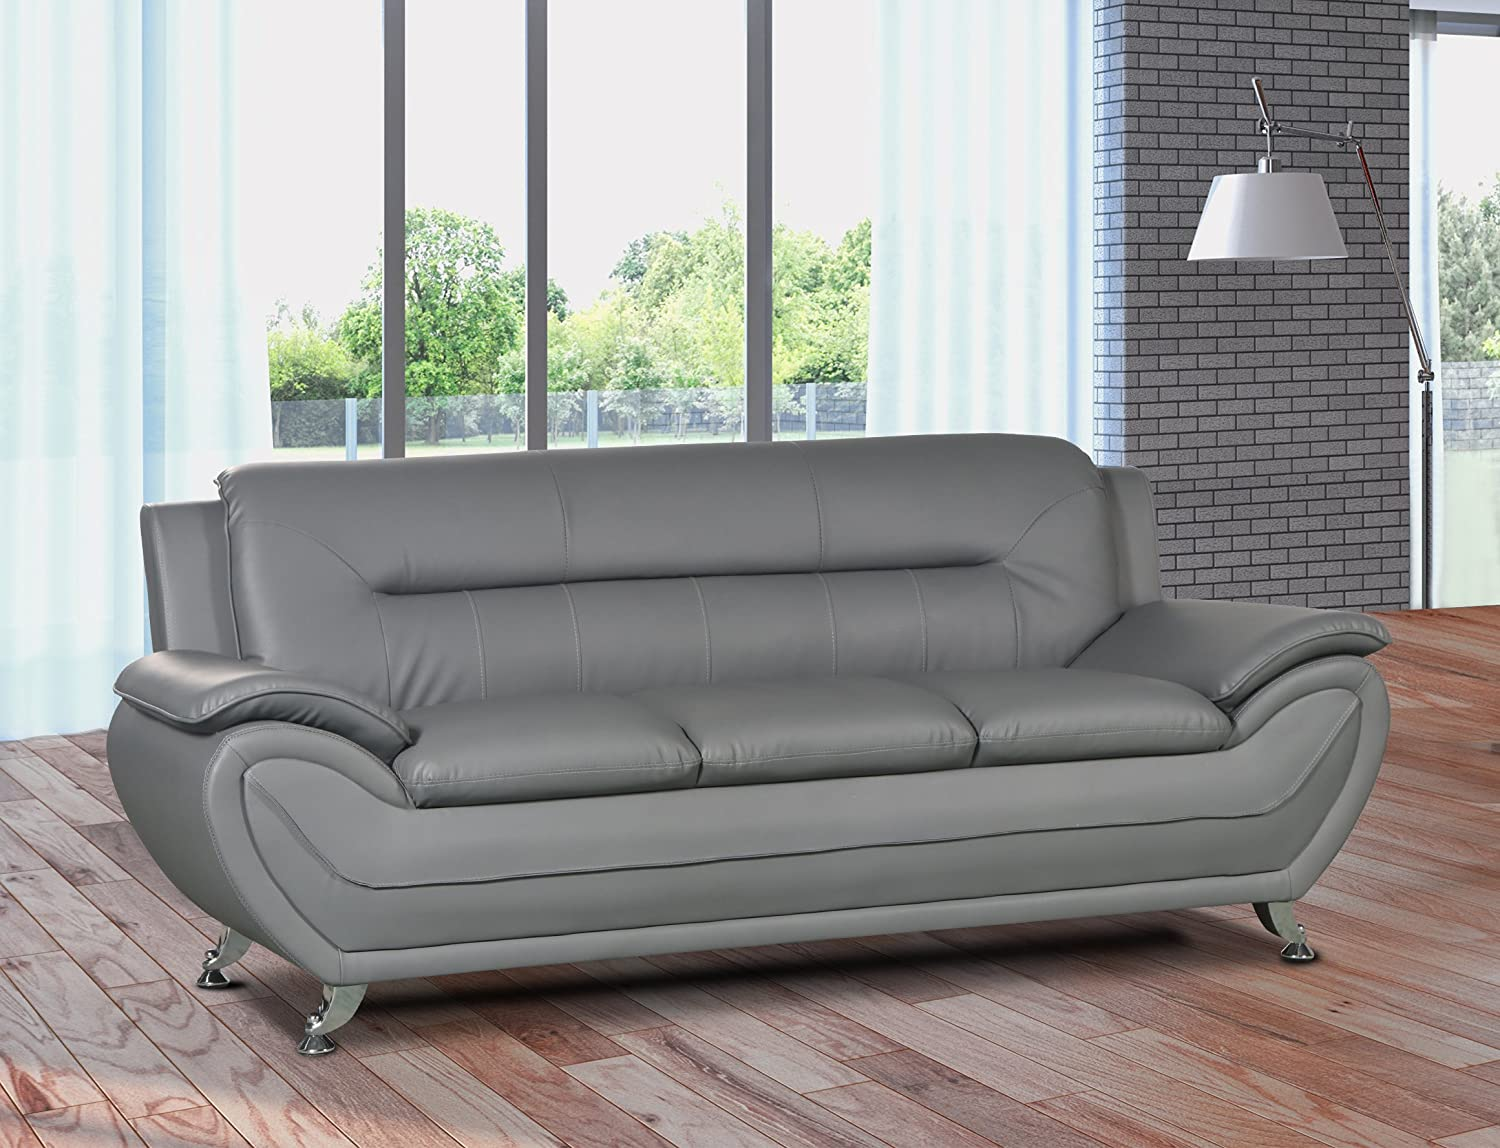 Outstanding Us Livings Anya Contemporary Modern Living Room Sofa Gray Best Image Libraries Thycampuscom